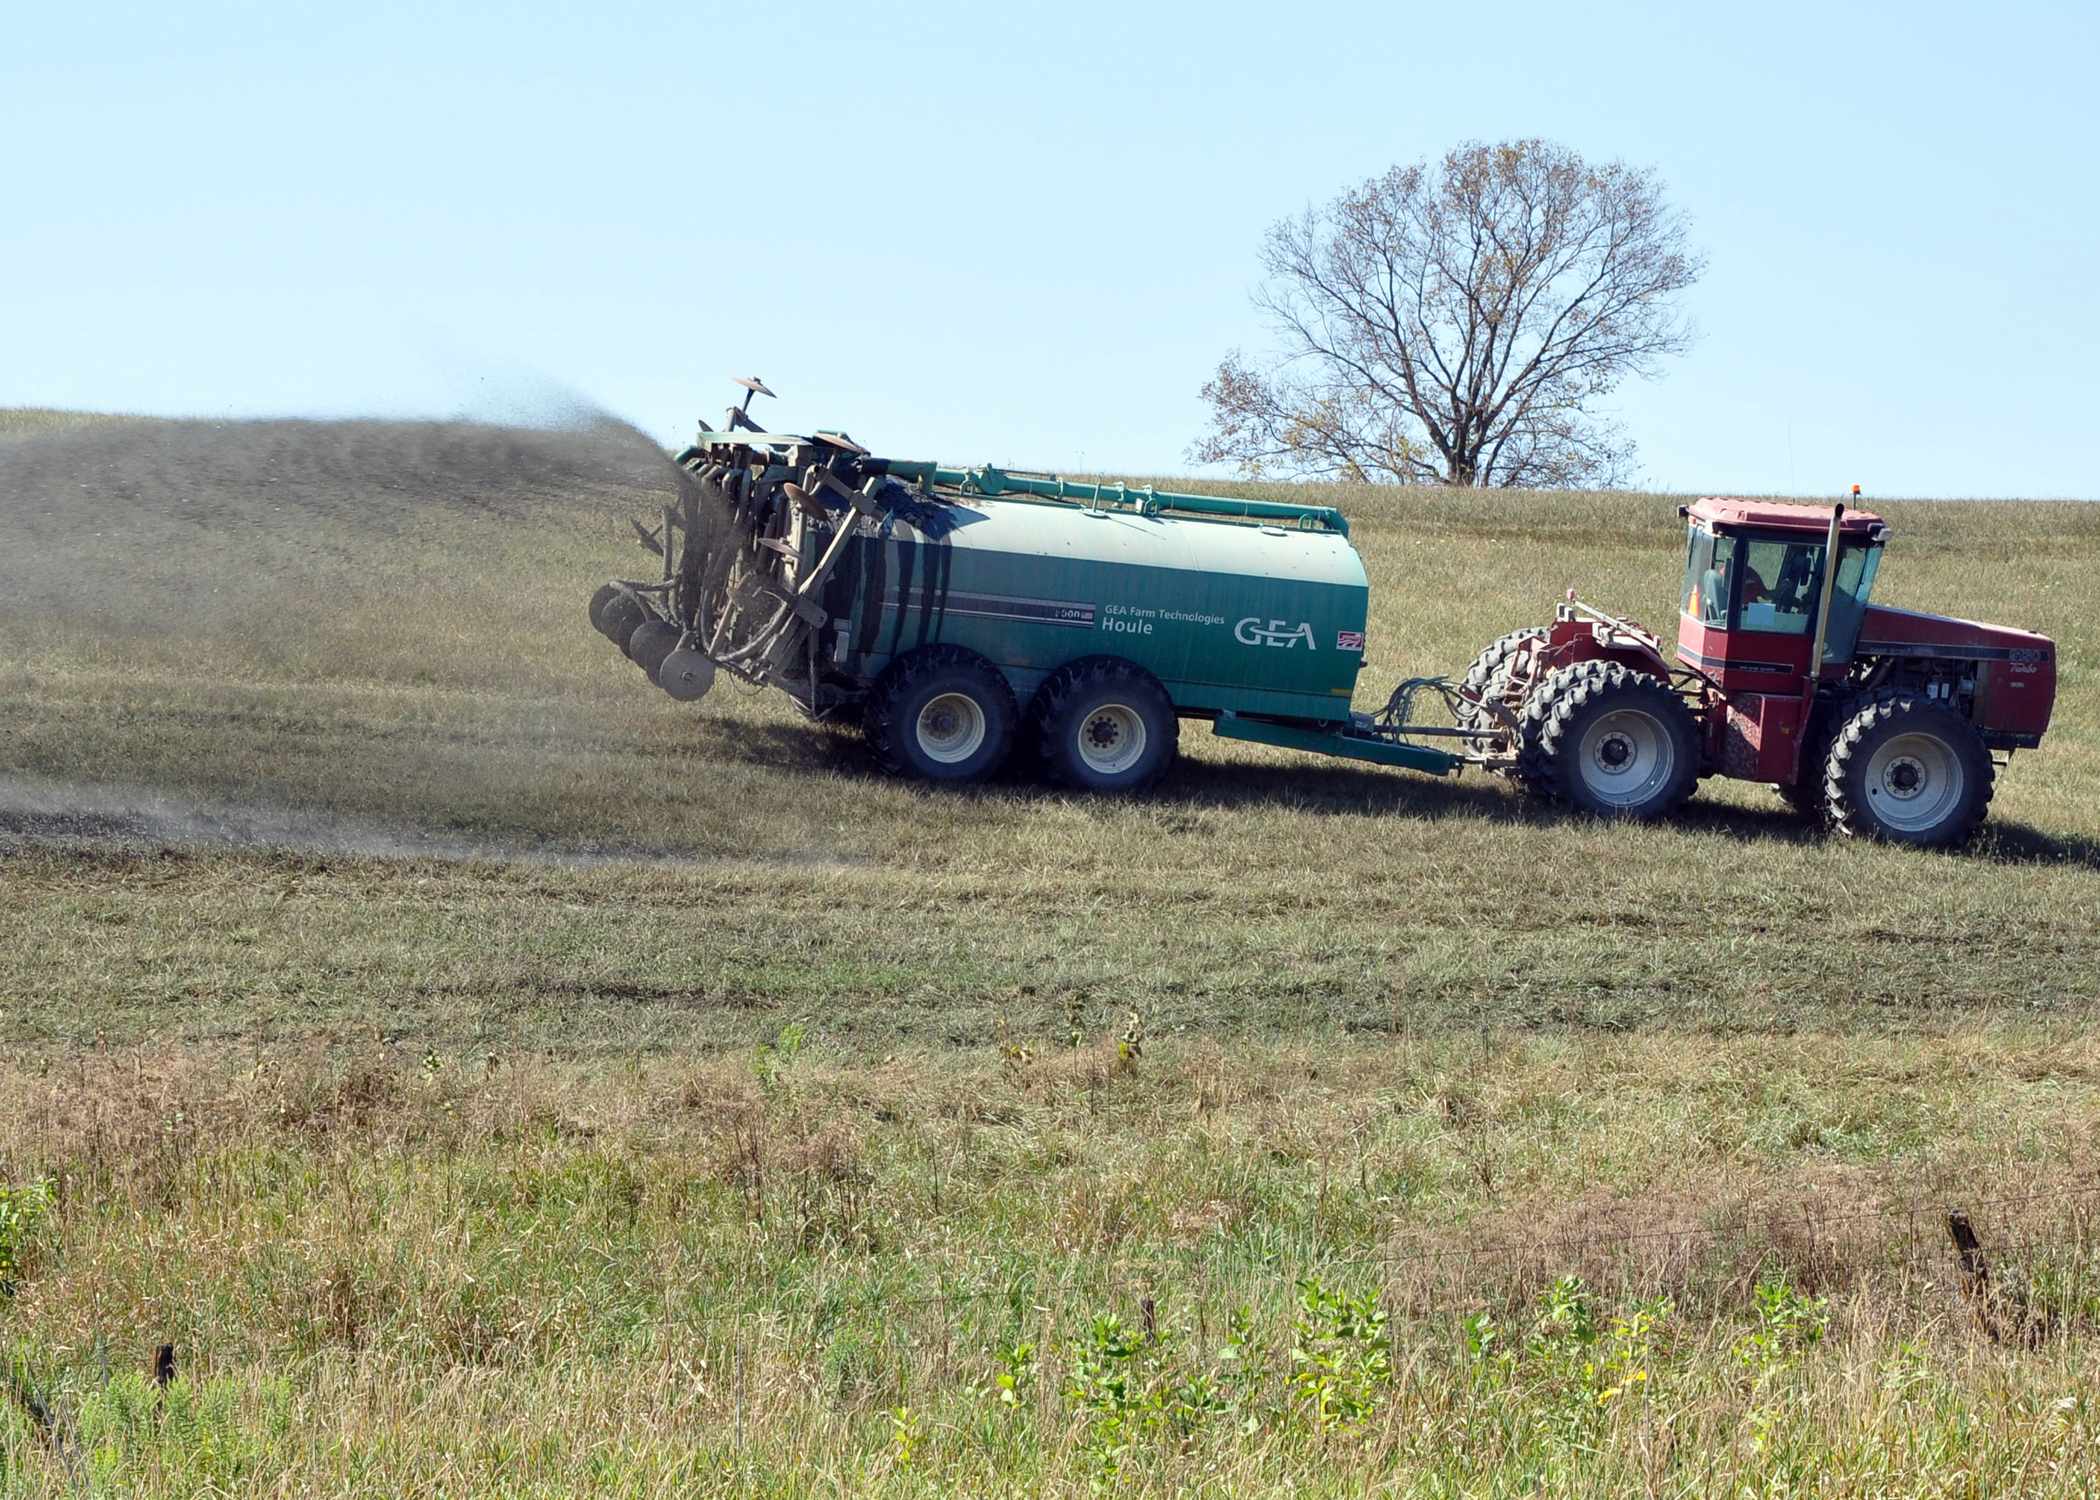 A southwest Iowa farmer spreads manure on pasture.